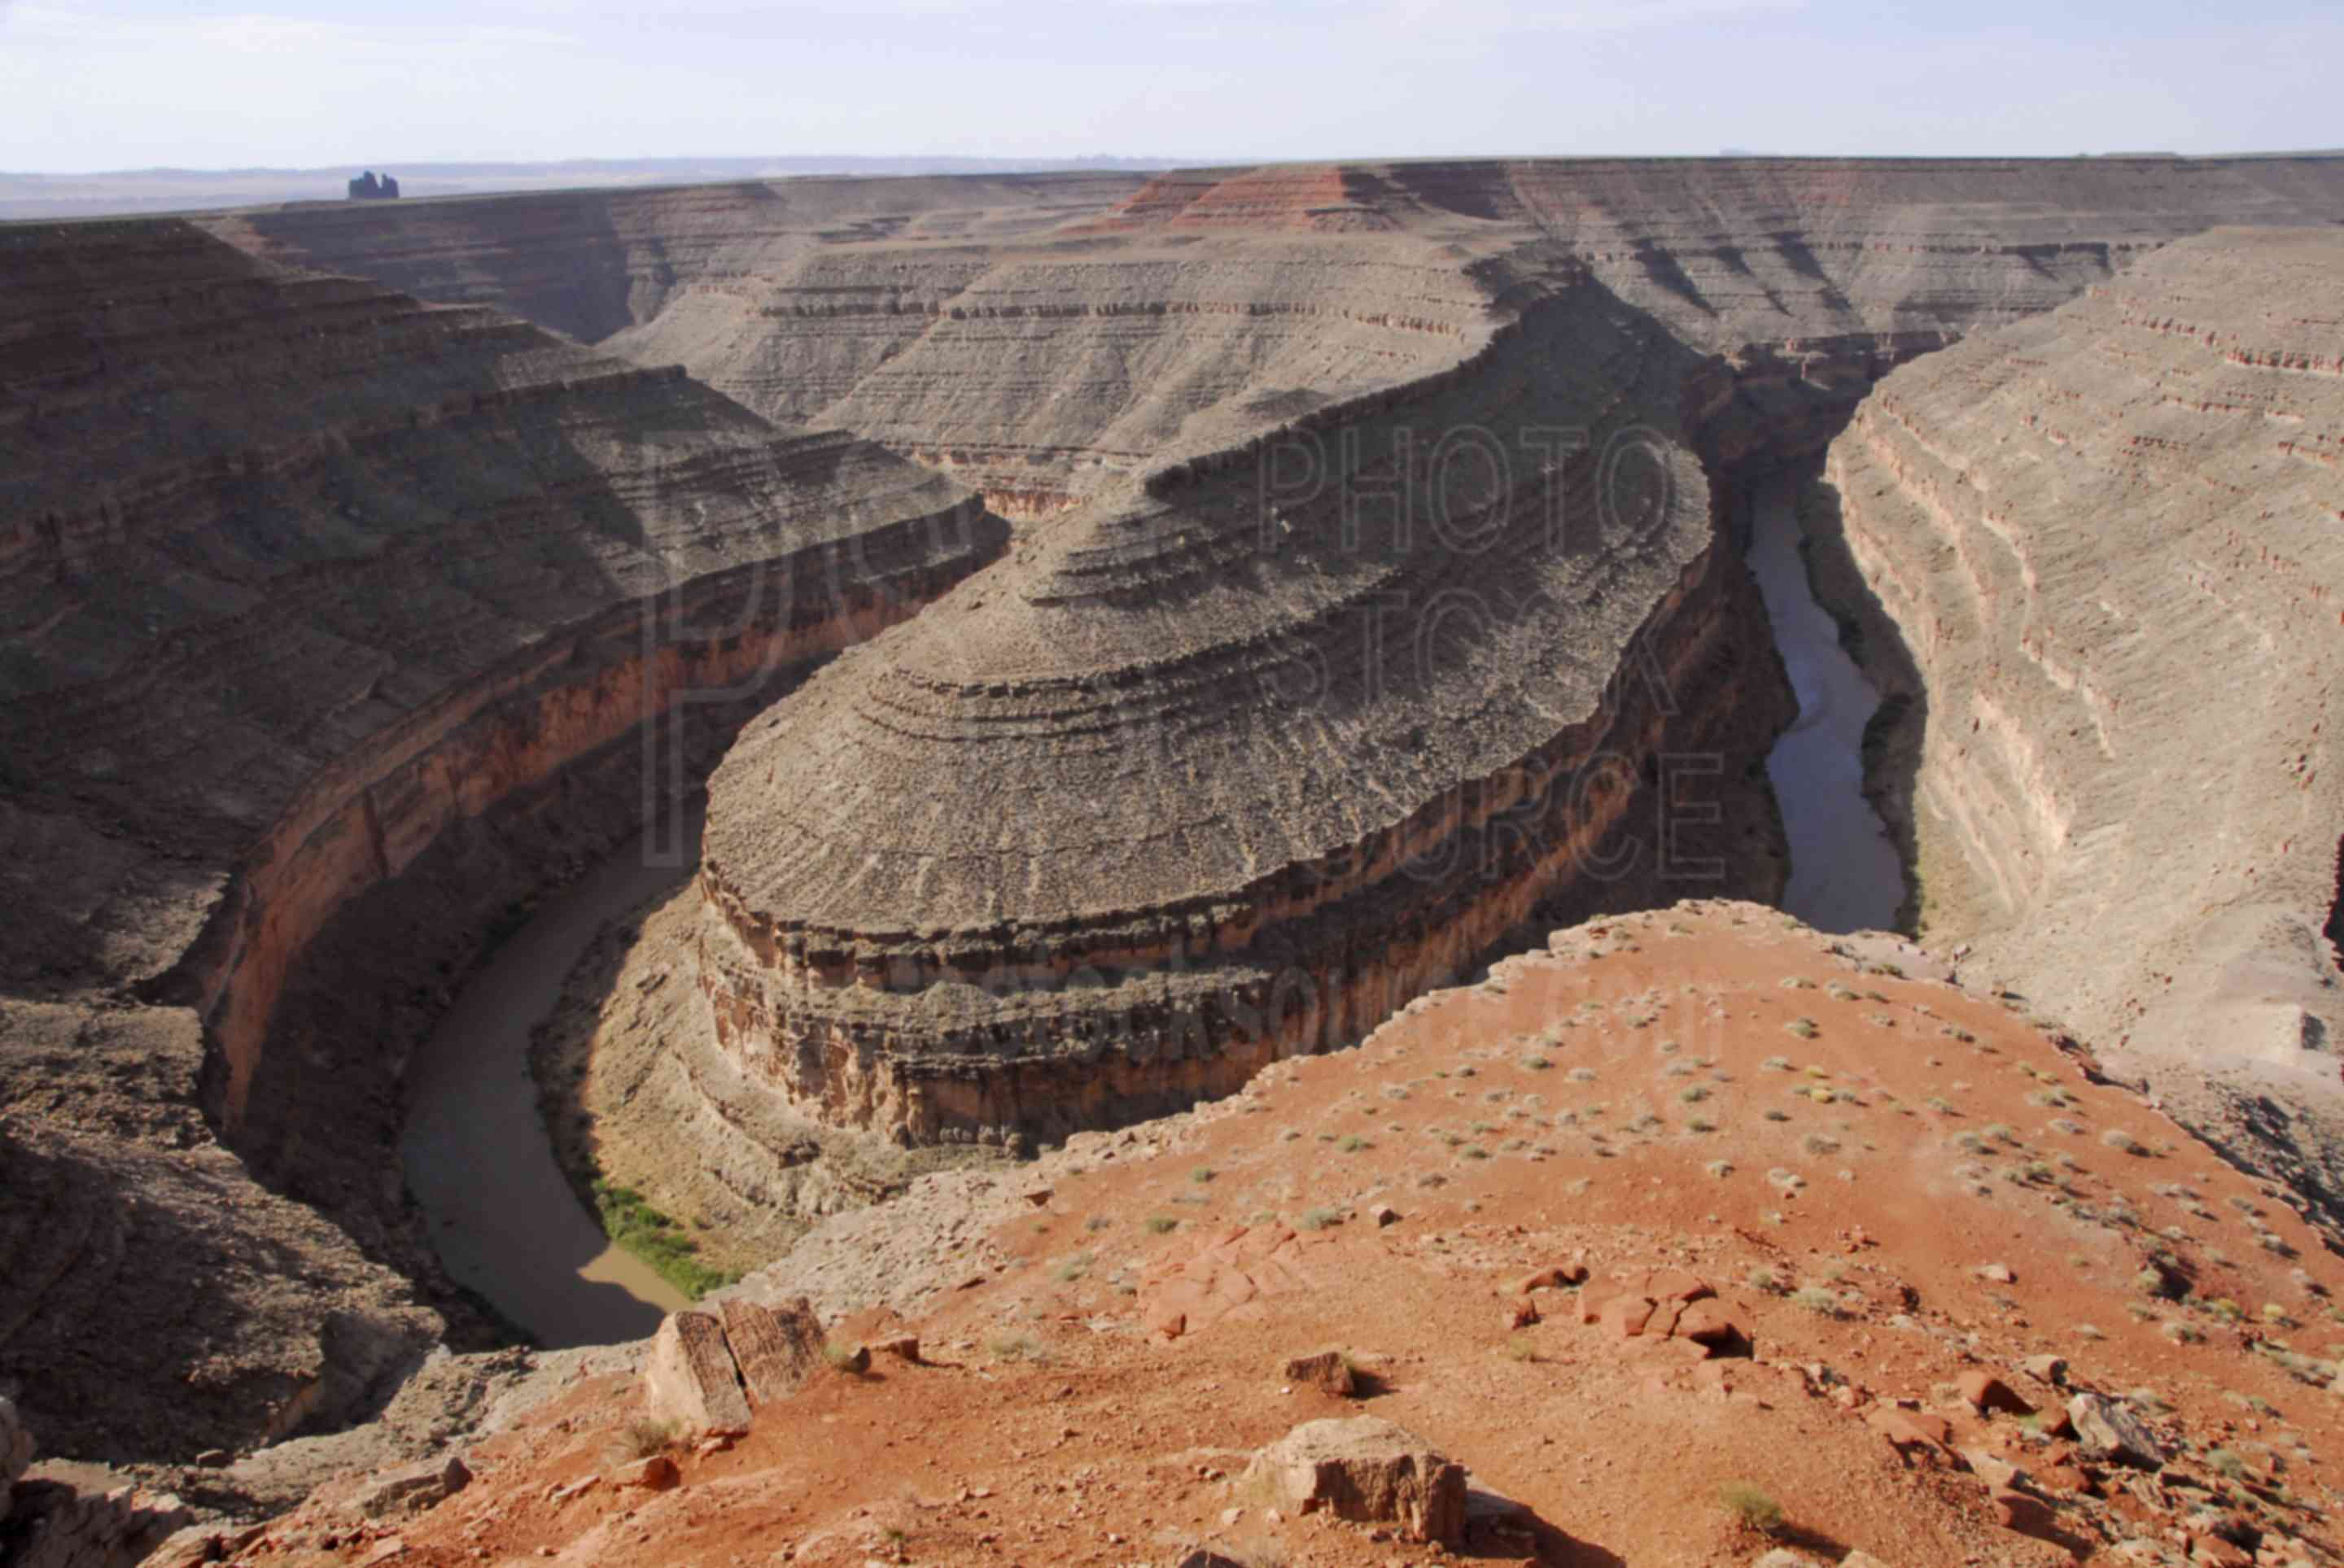 Goosenecks of San Juan River,goosenecks,bends,river,landform,winding,snake,nature